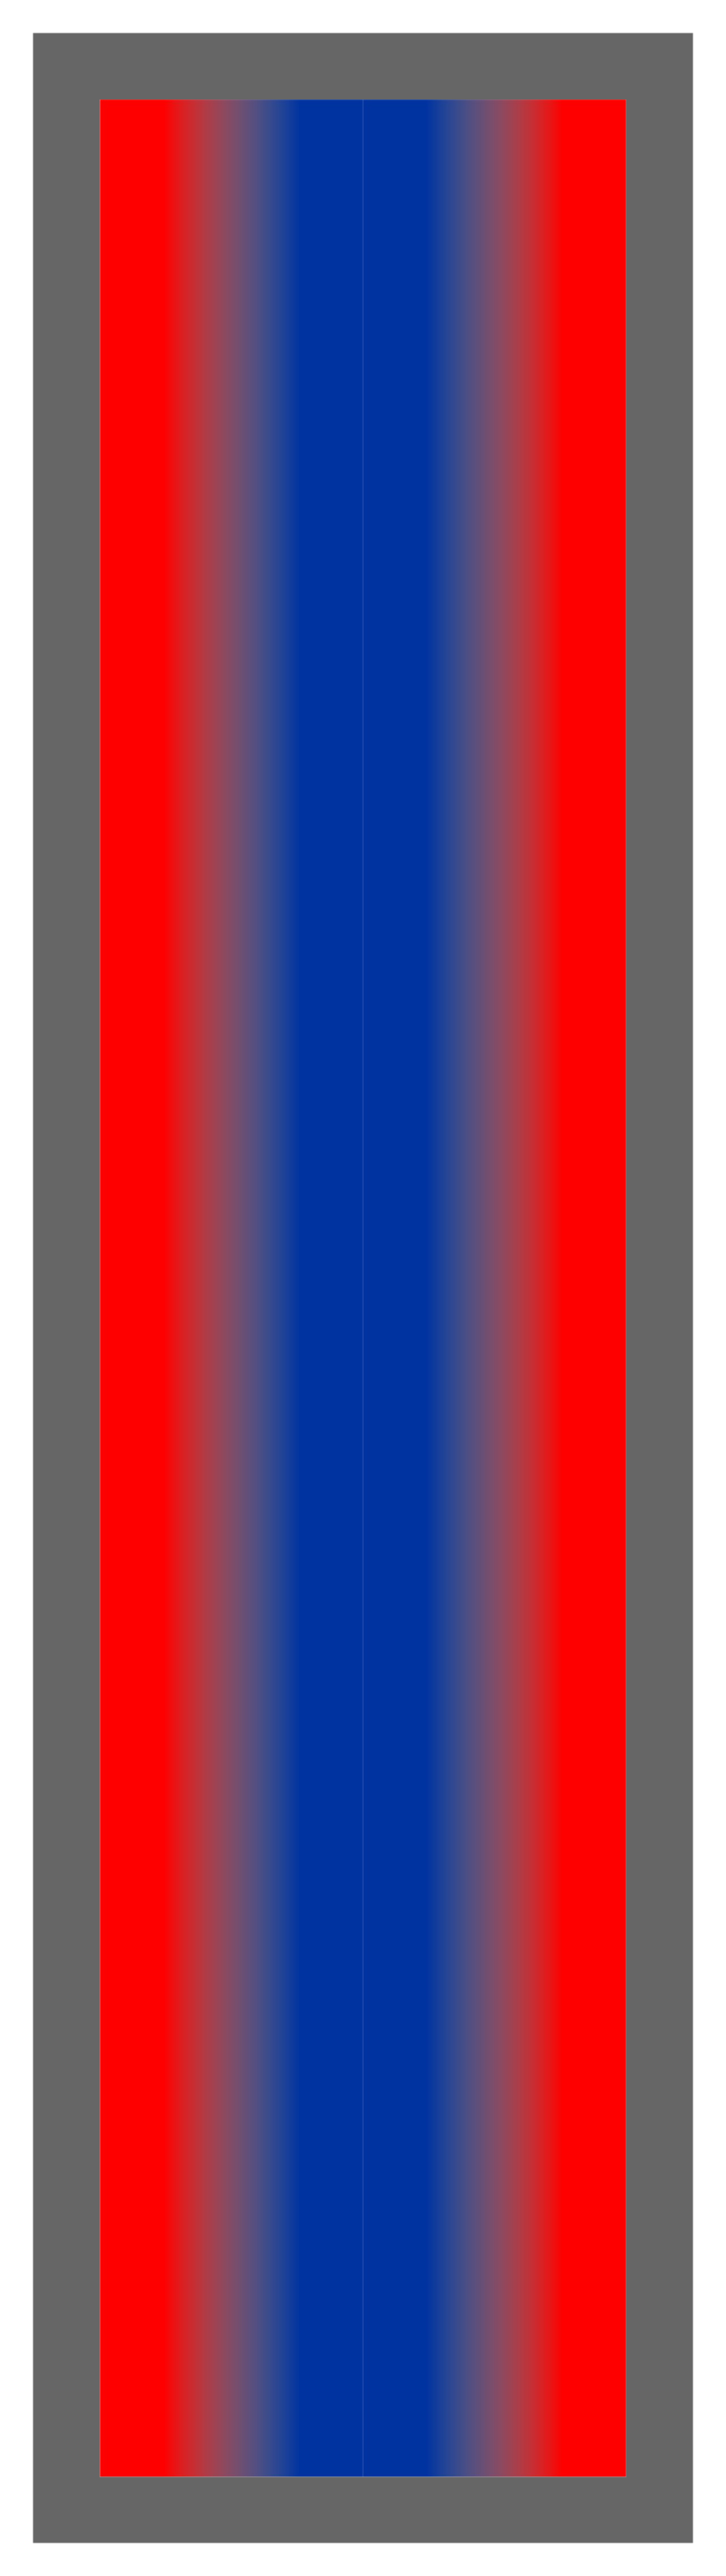 Red-Royal Blue-Red Ombre Stripe